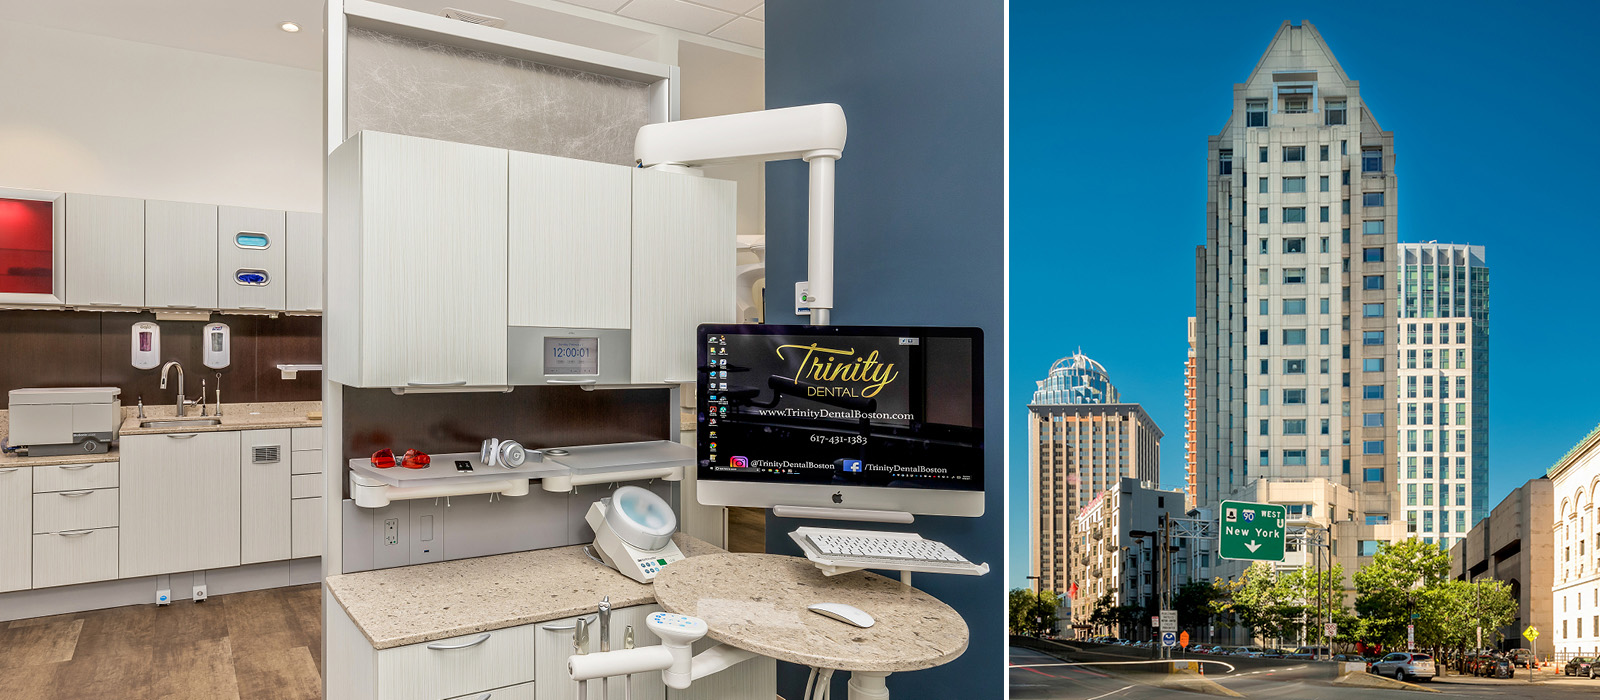 Trinity Dental treatment area and exterior view of office